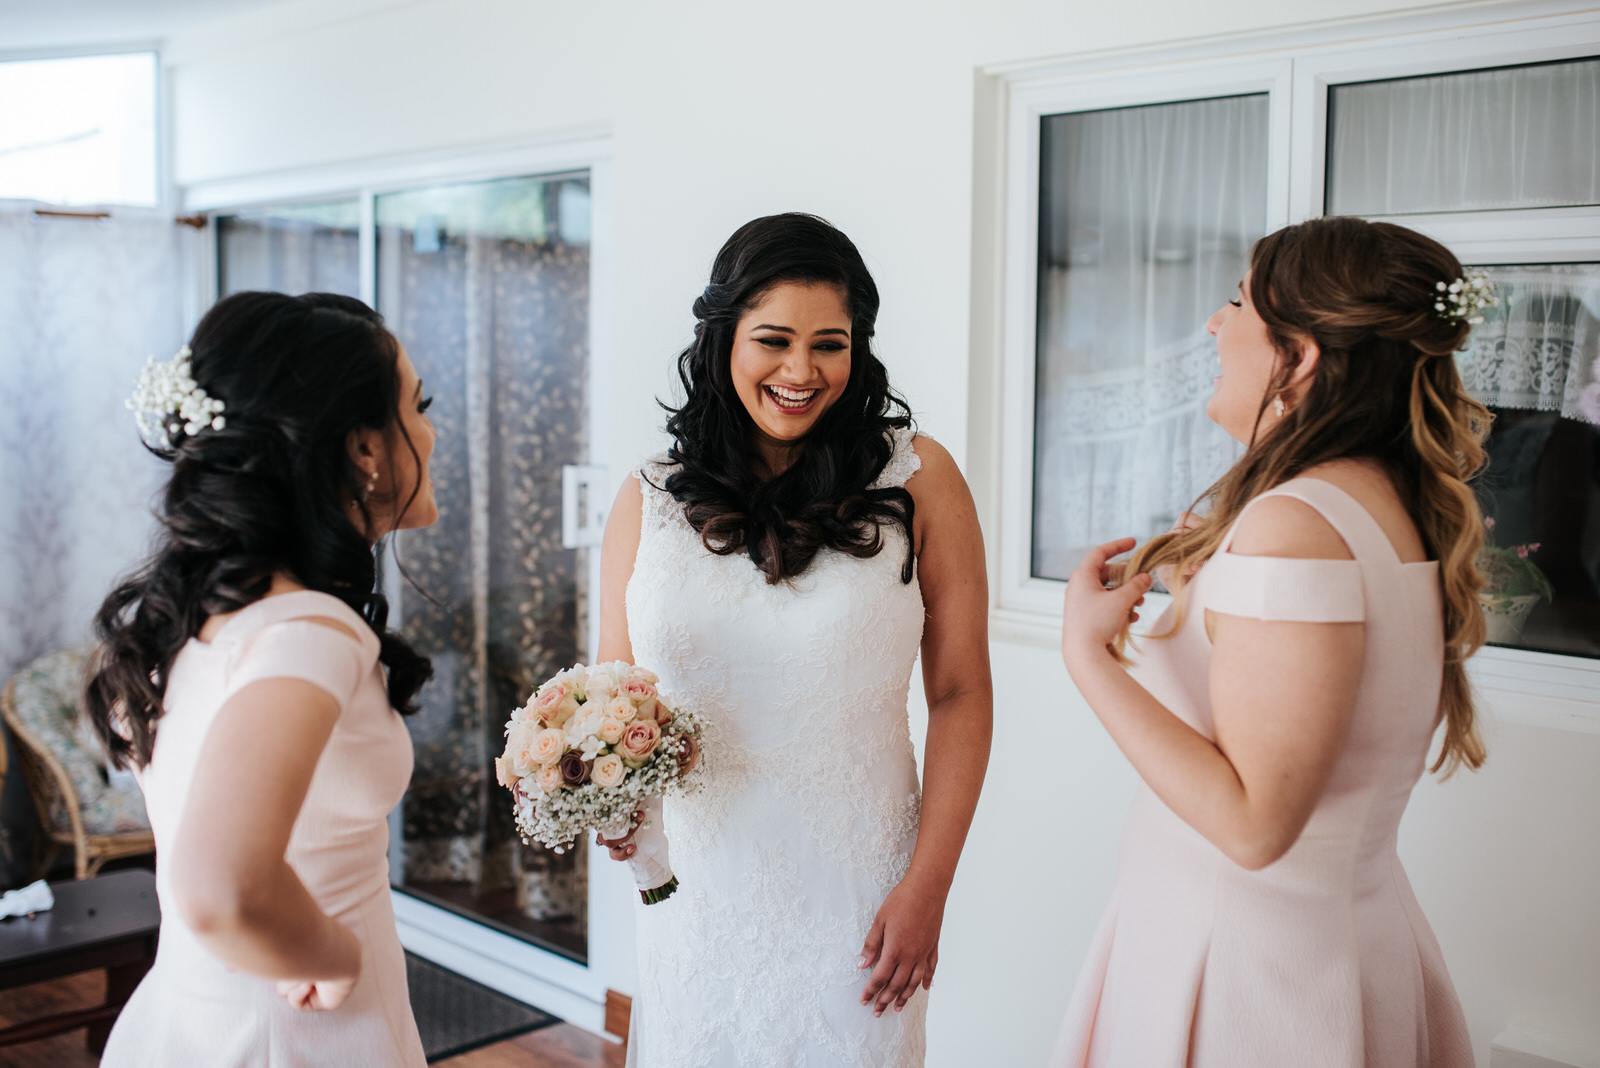 Bride shares a joyous moment with two bridesmaids before departi